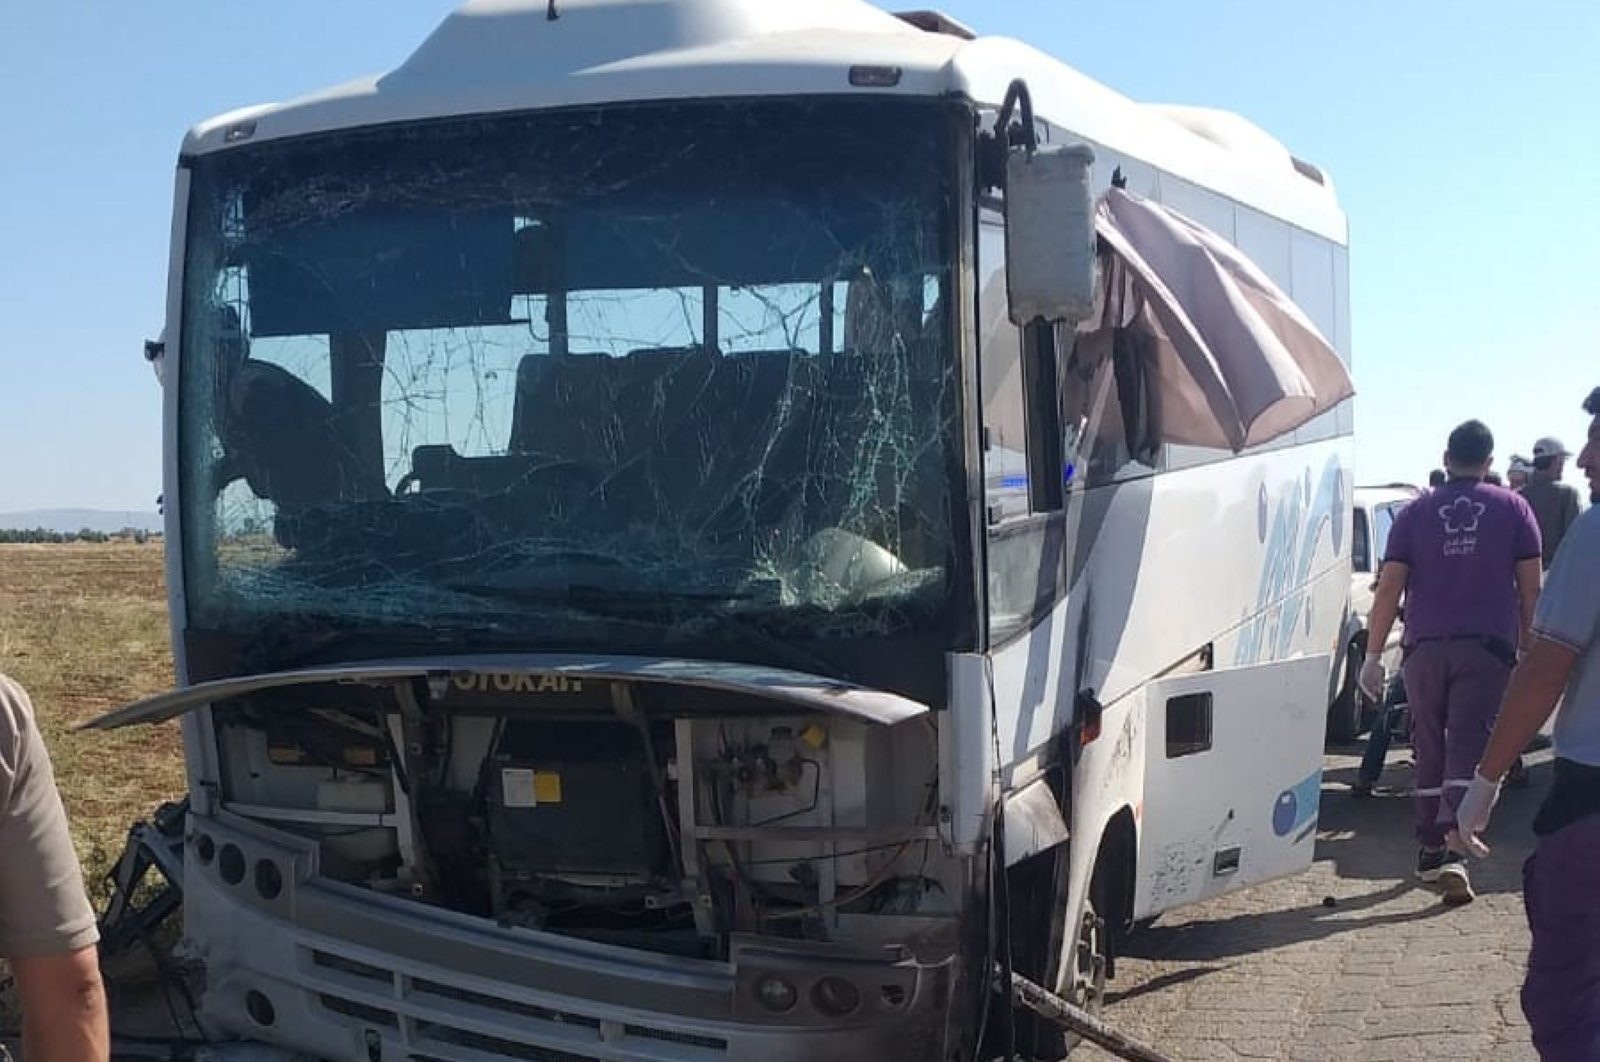 At least 16 police officers were injured in a terrorist attack that caused an explosion in a bus, Azaz, June 16, 2020.